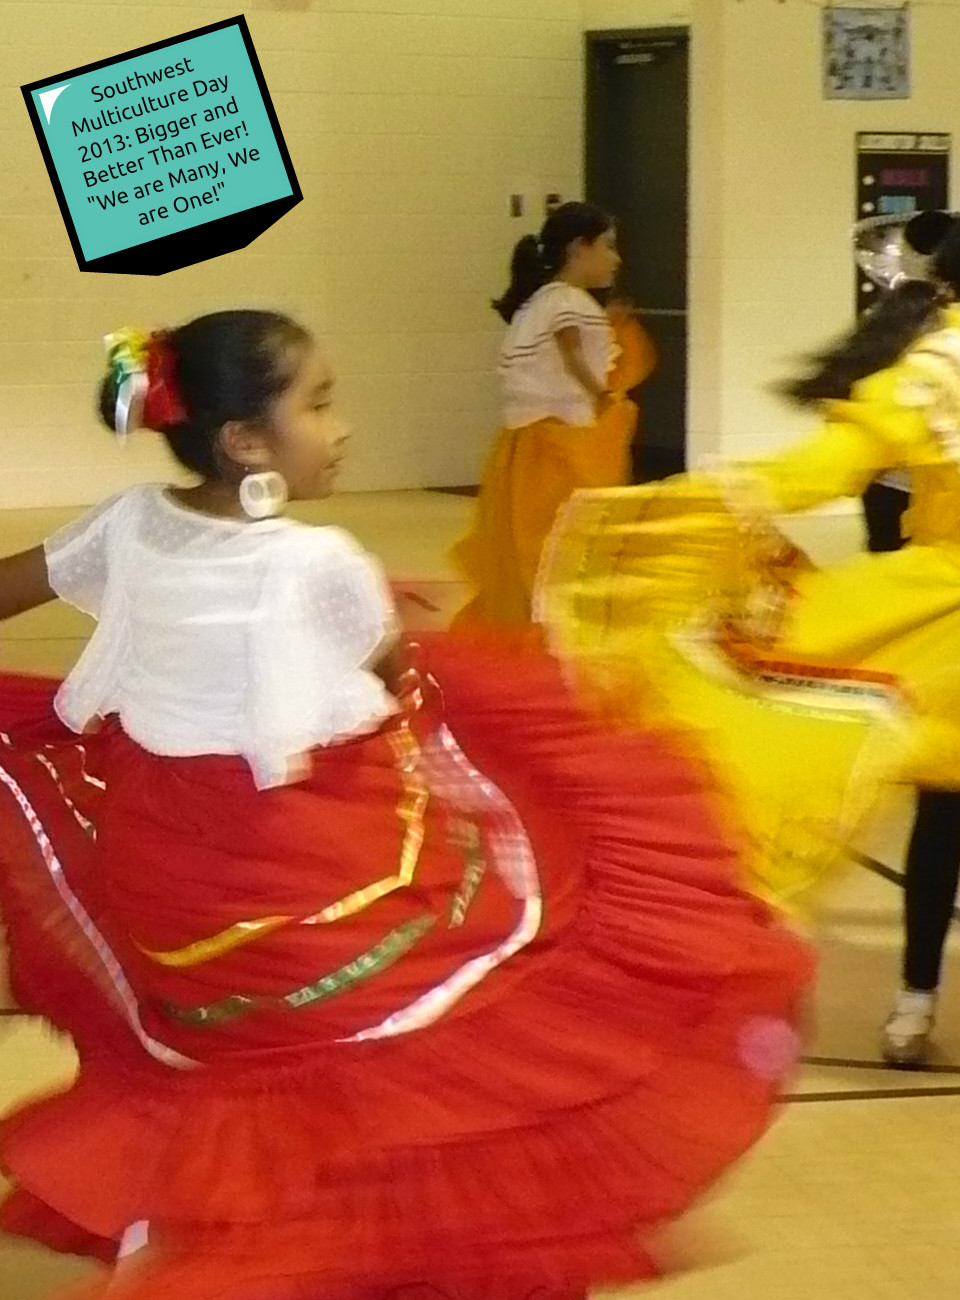 Multiculture Day 2013